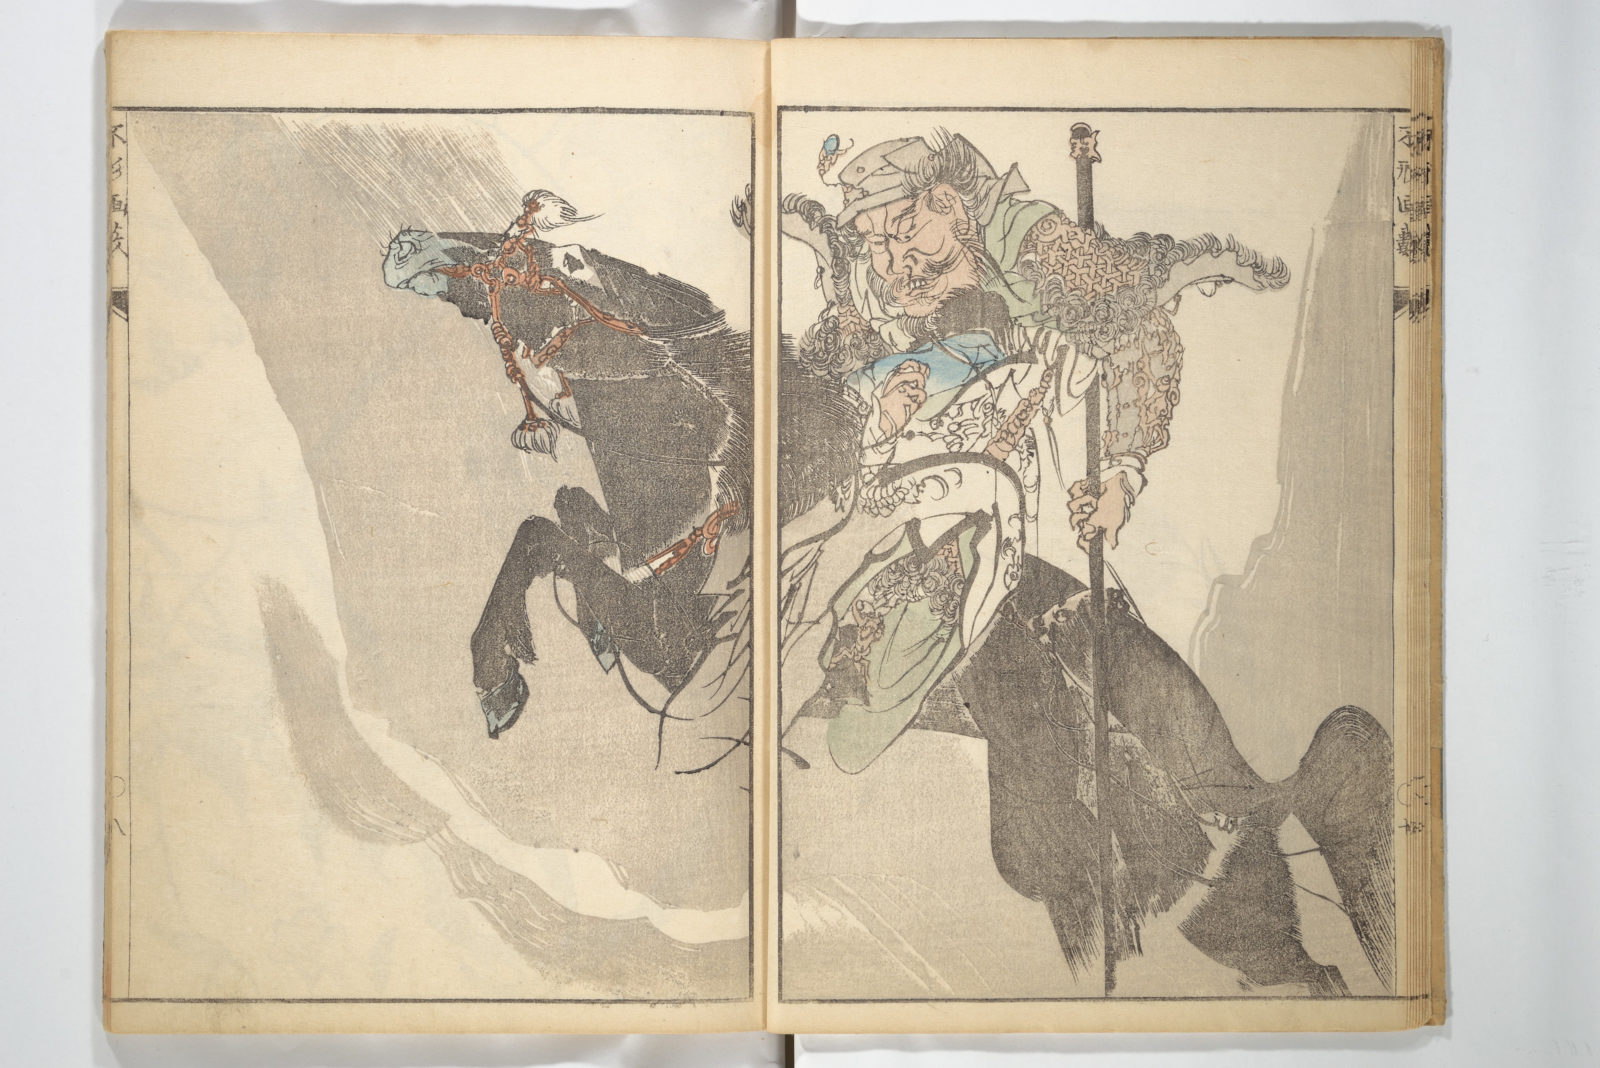 A Thicket of Pictures Without Shapes (Fukei gasō)